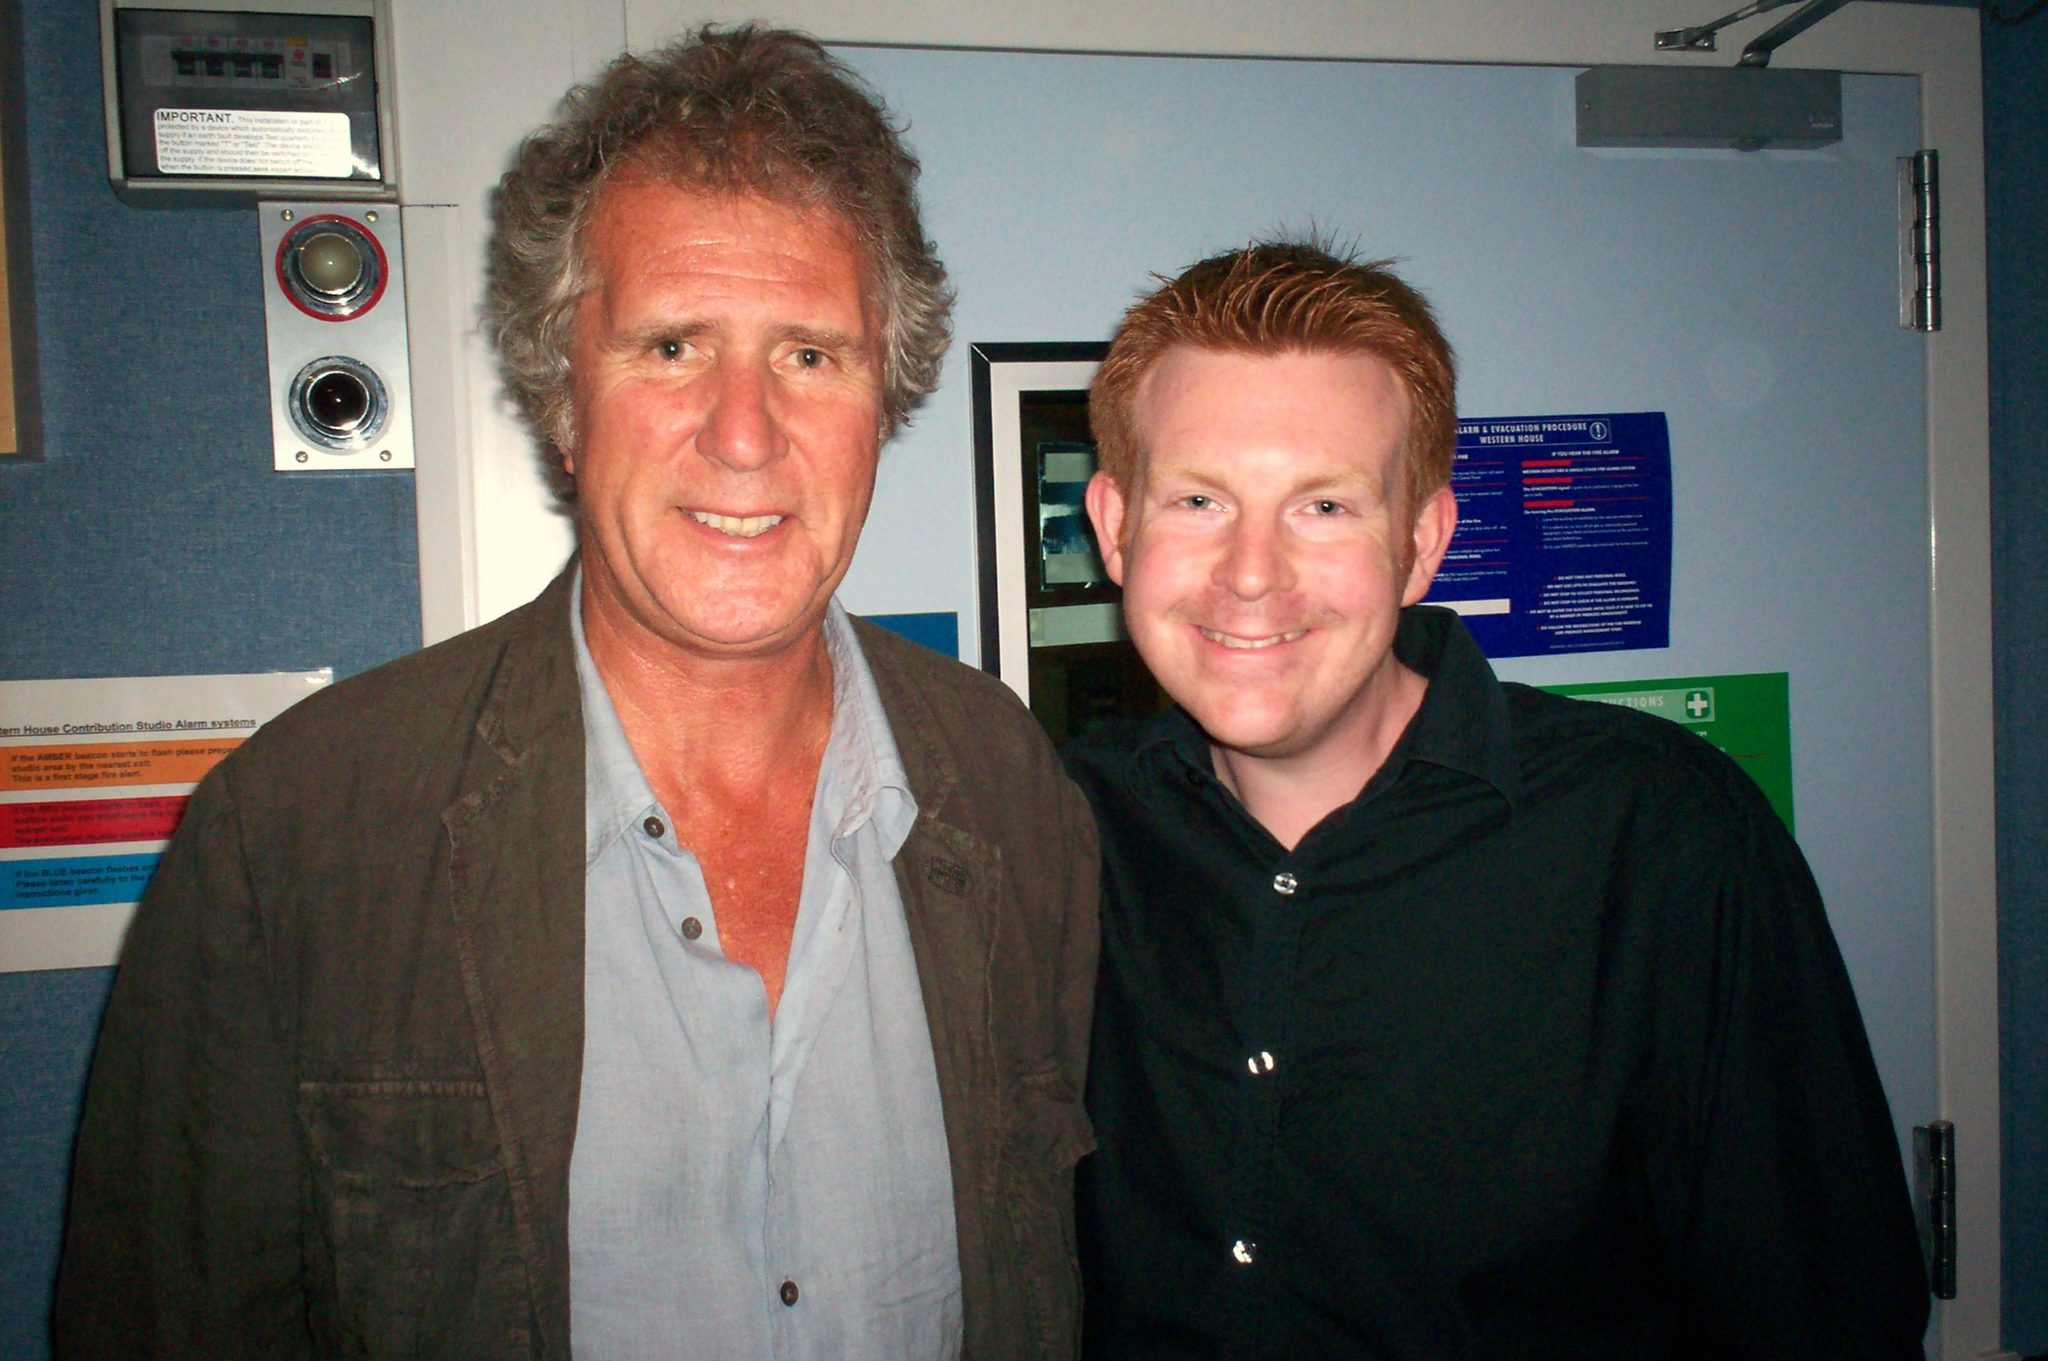 Enjoy Celebrity Radio's Dire Straits Guitarist John Illsley Life Story Interview….. John Illsley (born 24 June 1949, Leicester, England) is an English musician who rose […]